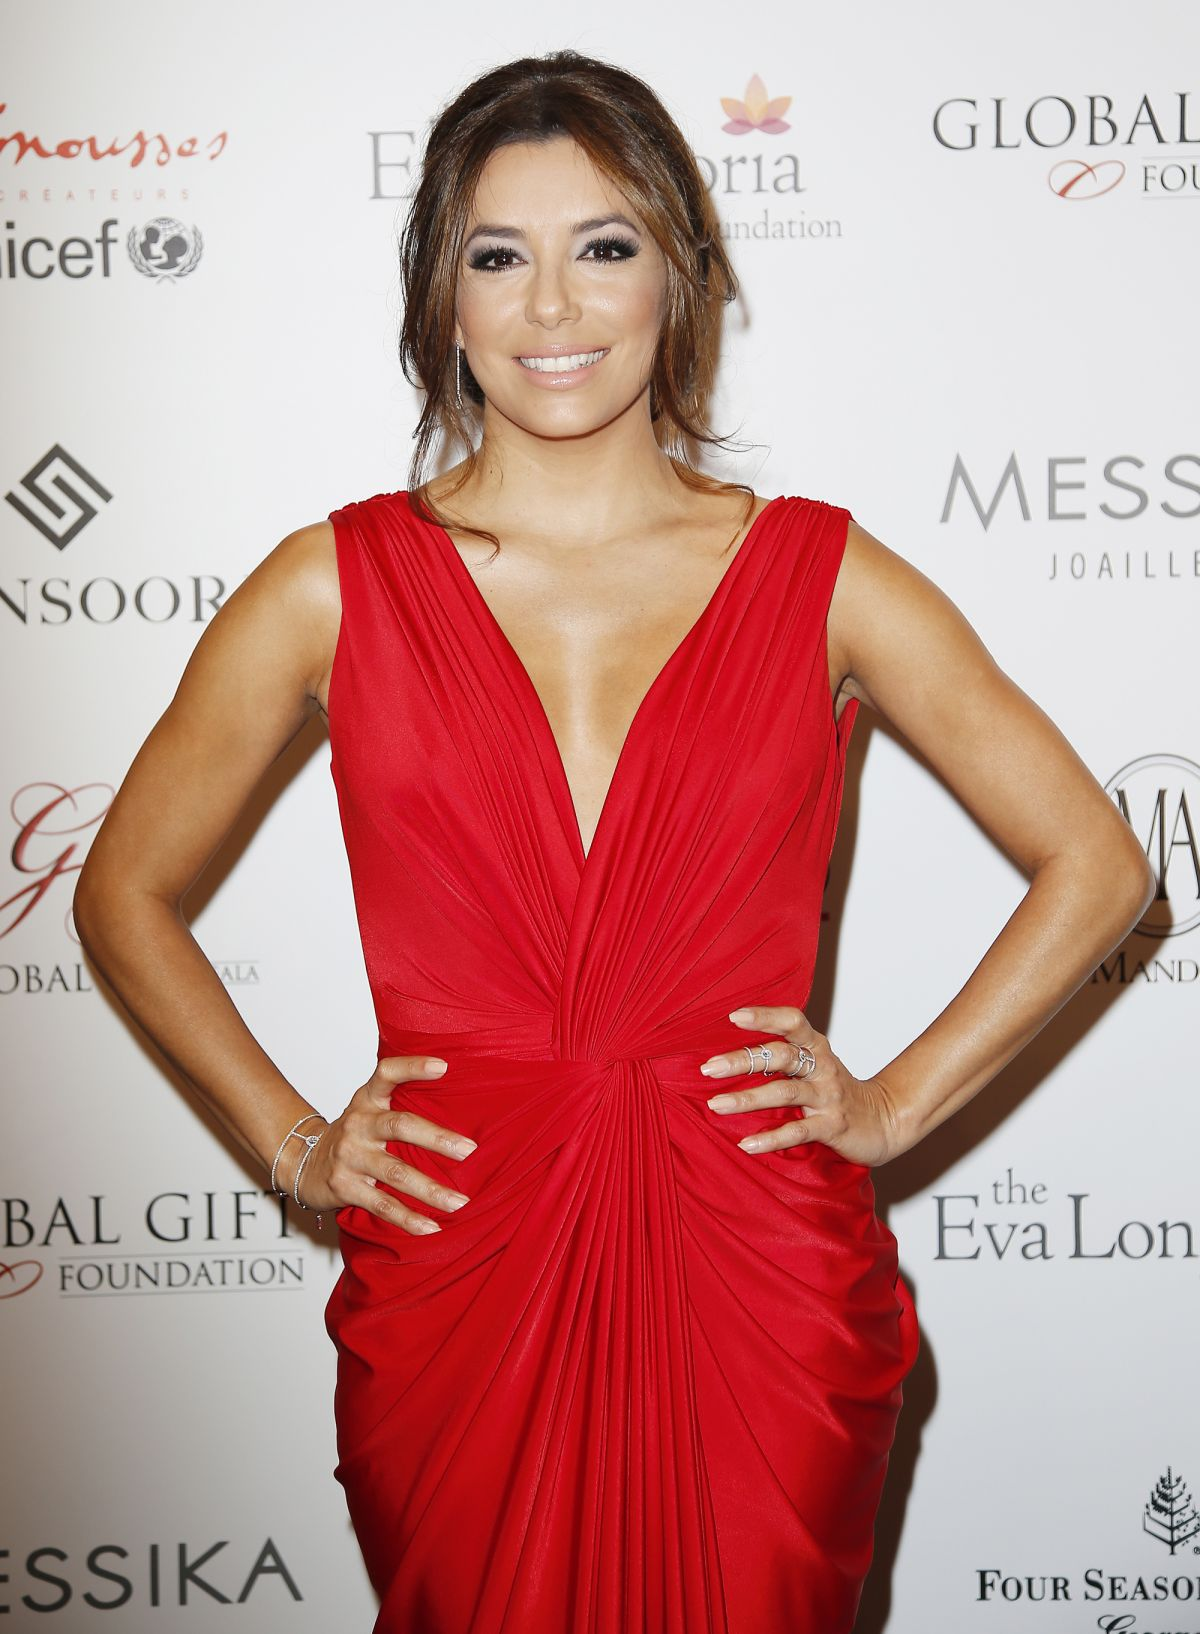 EVA LONGORIA at Global Gift Gala in Paris